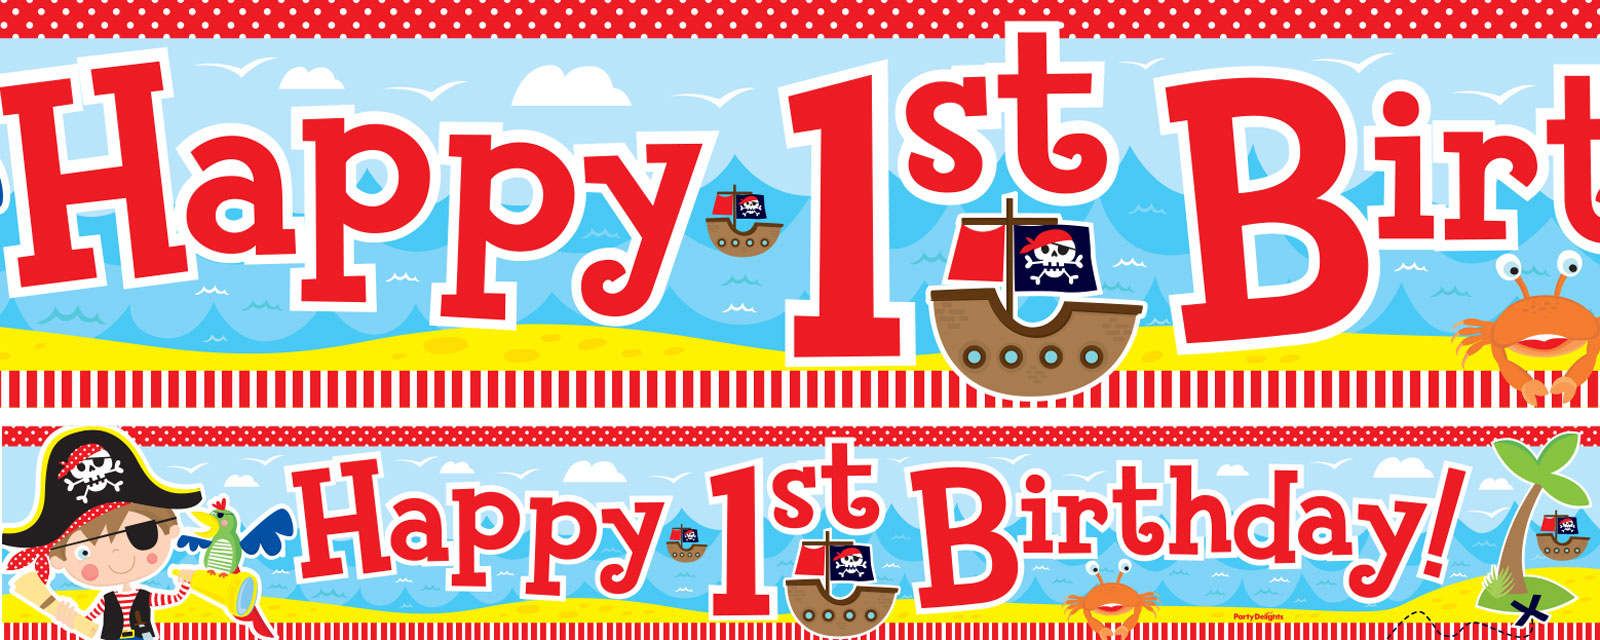 Pirate 1st Birthday Paper Banners 1 design 1m each